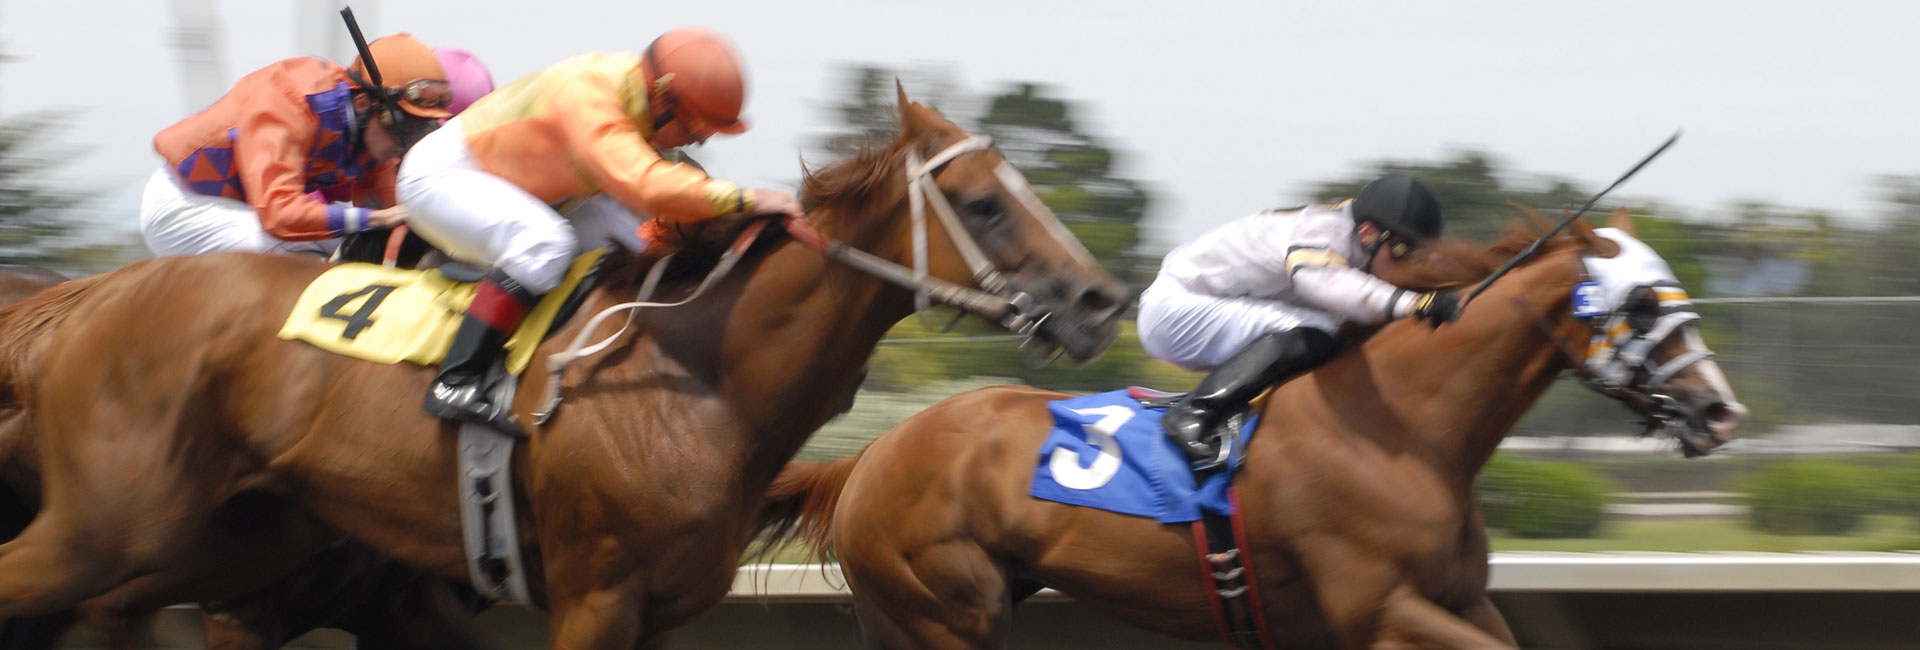 LIVE SATELLITE HORSE RACING & BETTING, ALL YEAR LONG